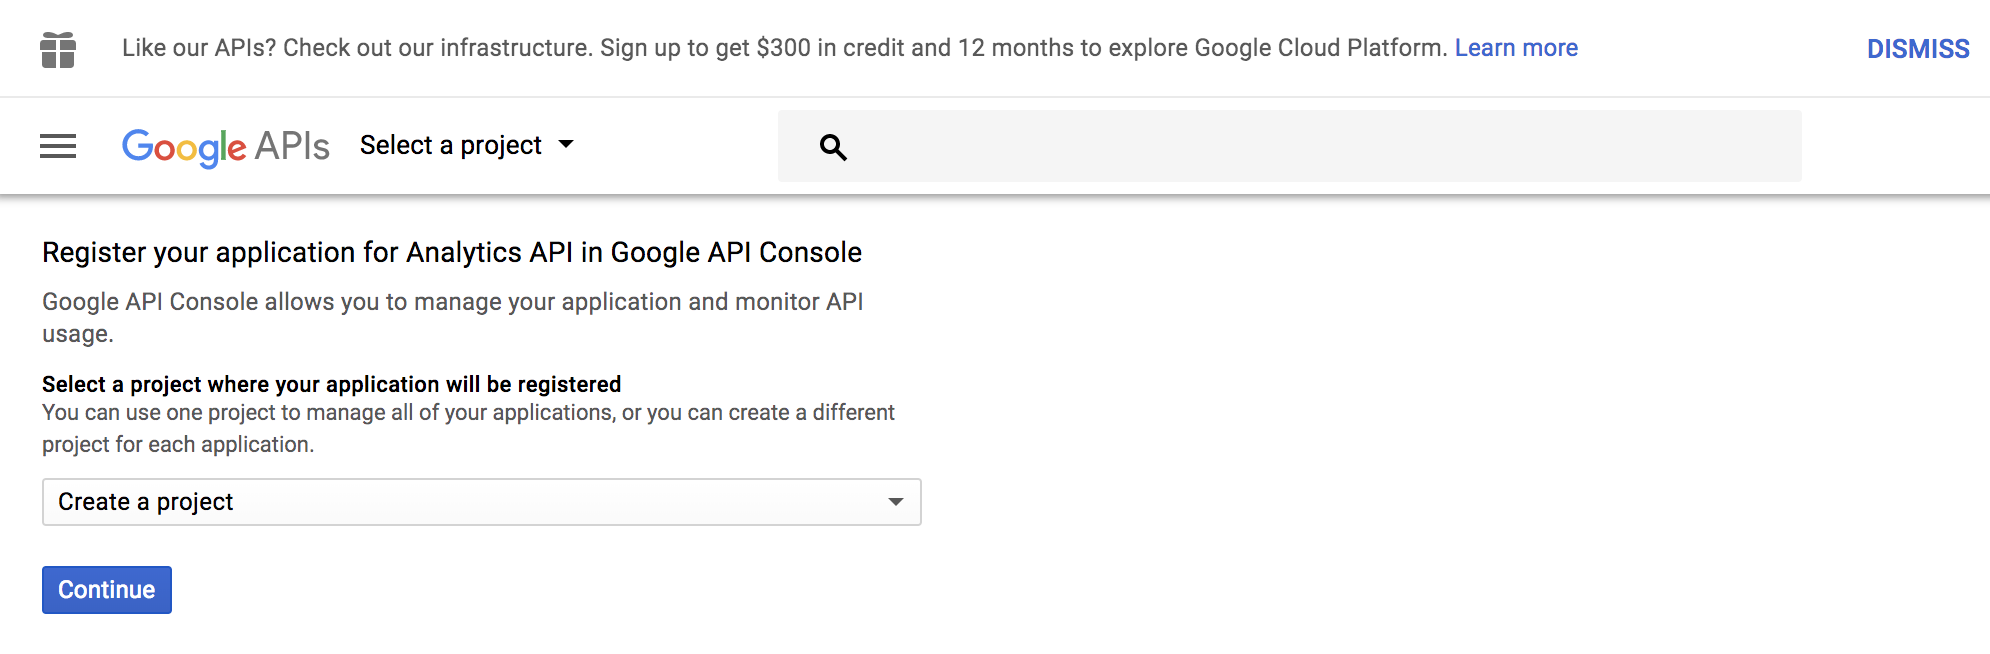 Enable the use of API for your Google account